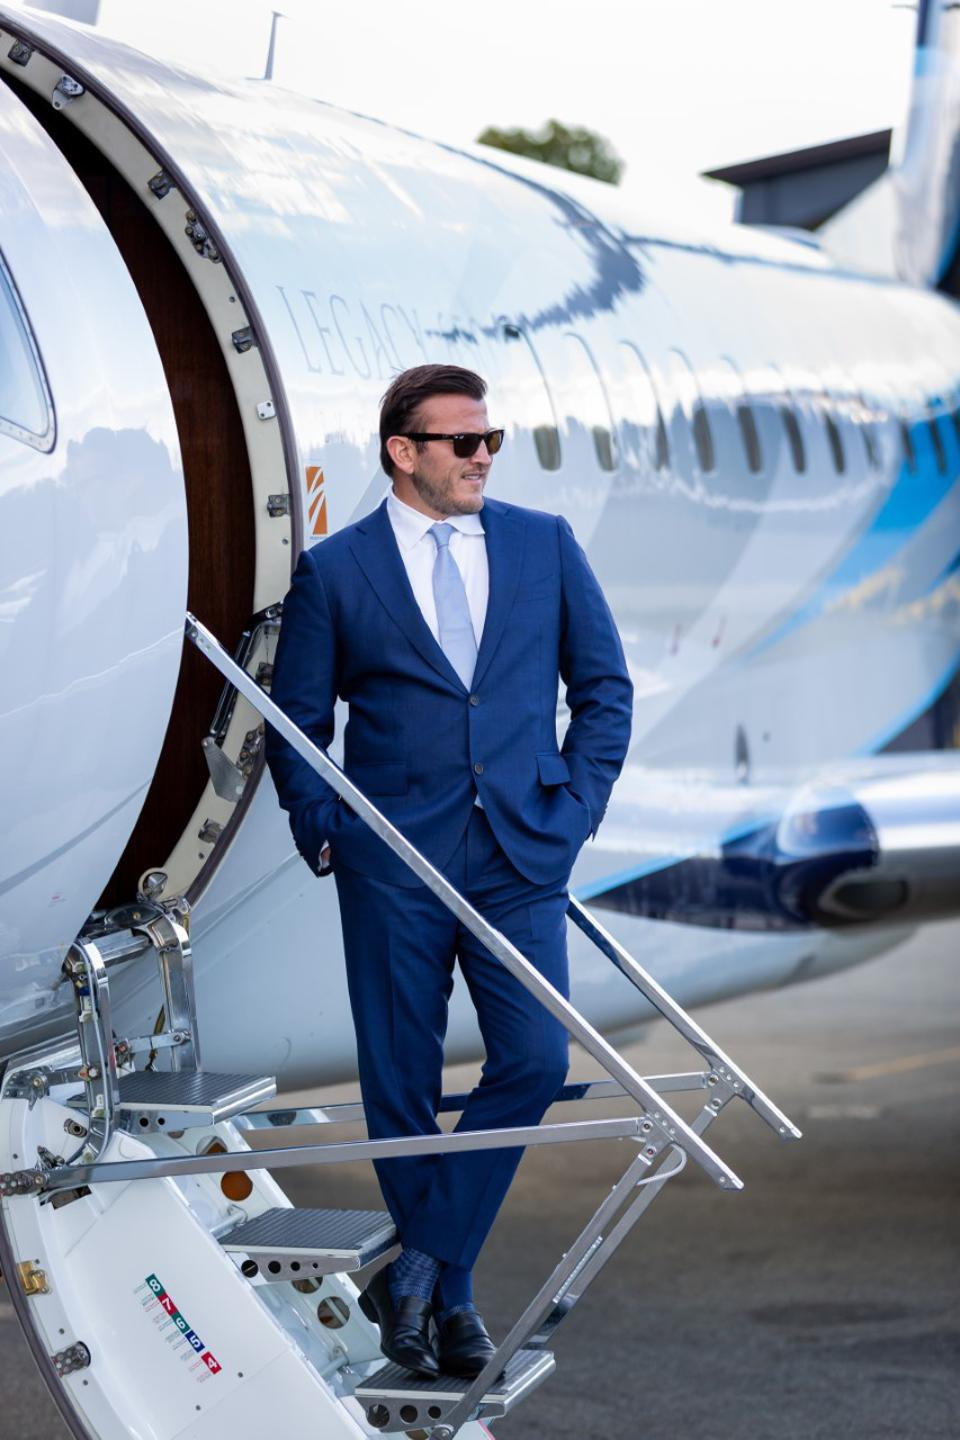 Man entering a private-jet